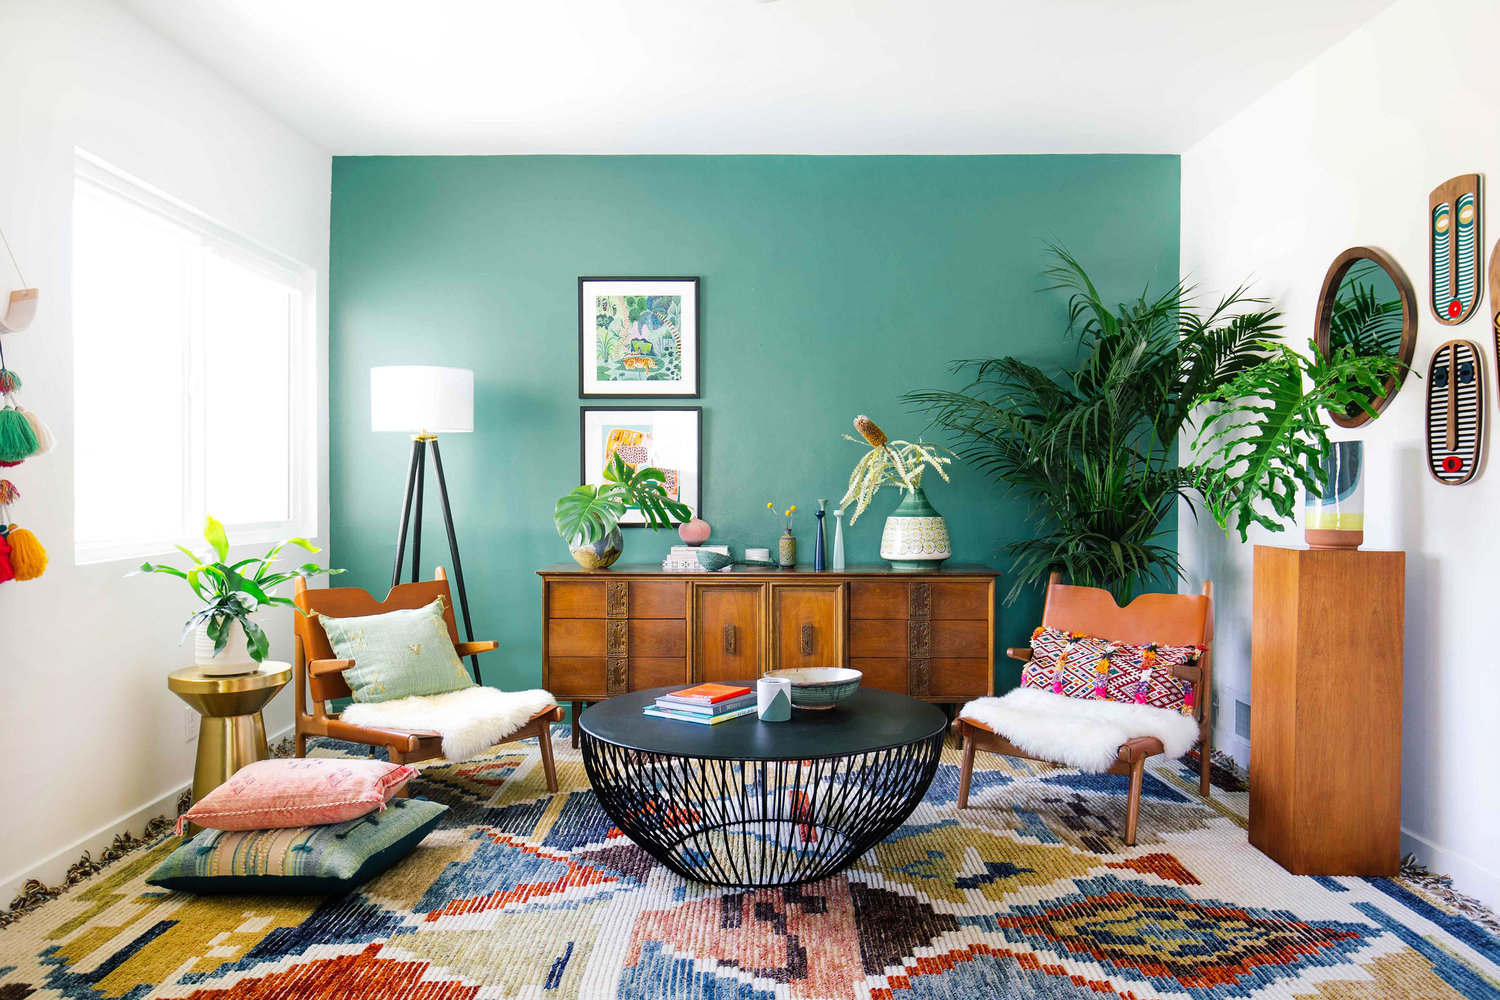 11 Easy, Unexpected Living Room Decorating Ideas  Real Simple